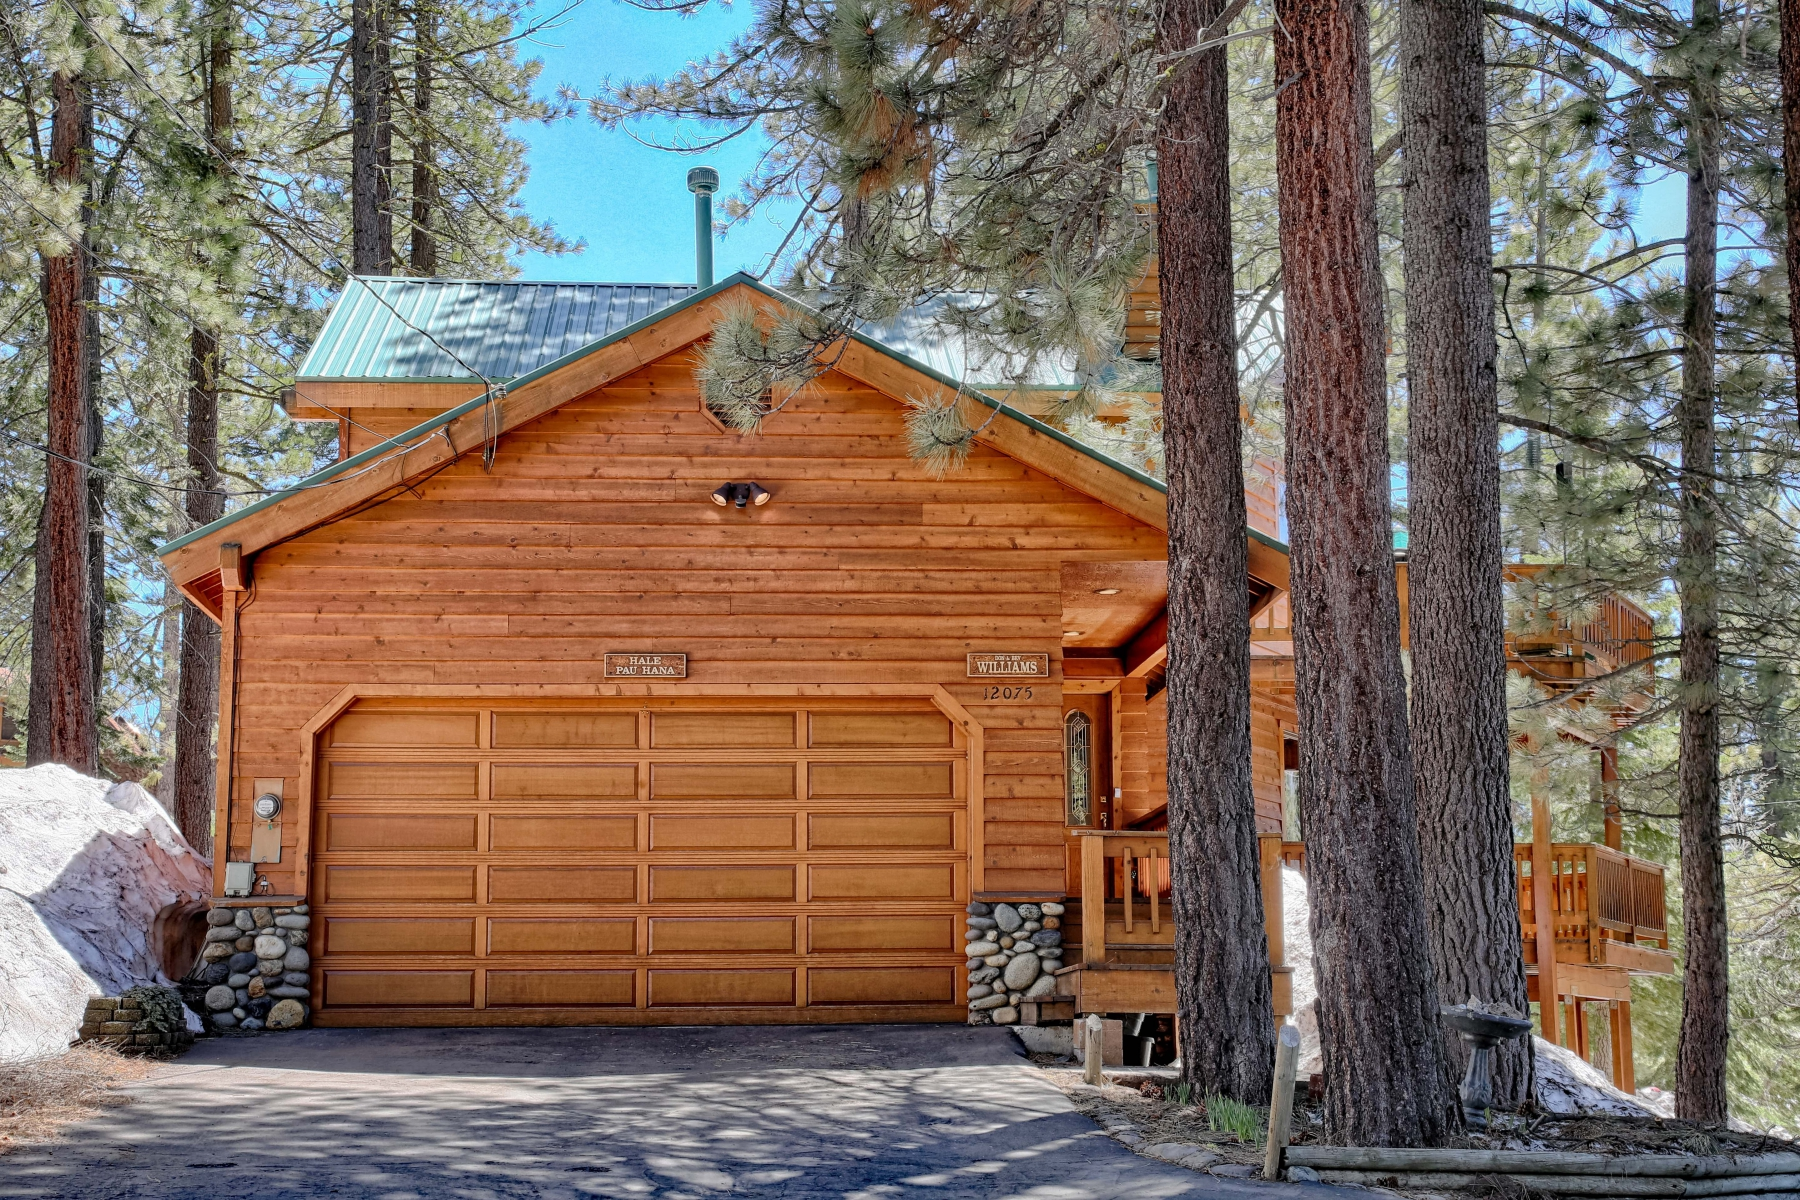 Single Family Home for Active at 12075 Bavarian Way, Truckee, CA 12075 Bavarian Way Truckee, California 96161 United States